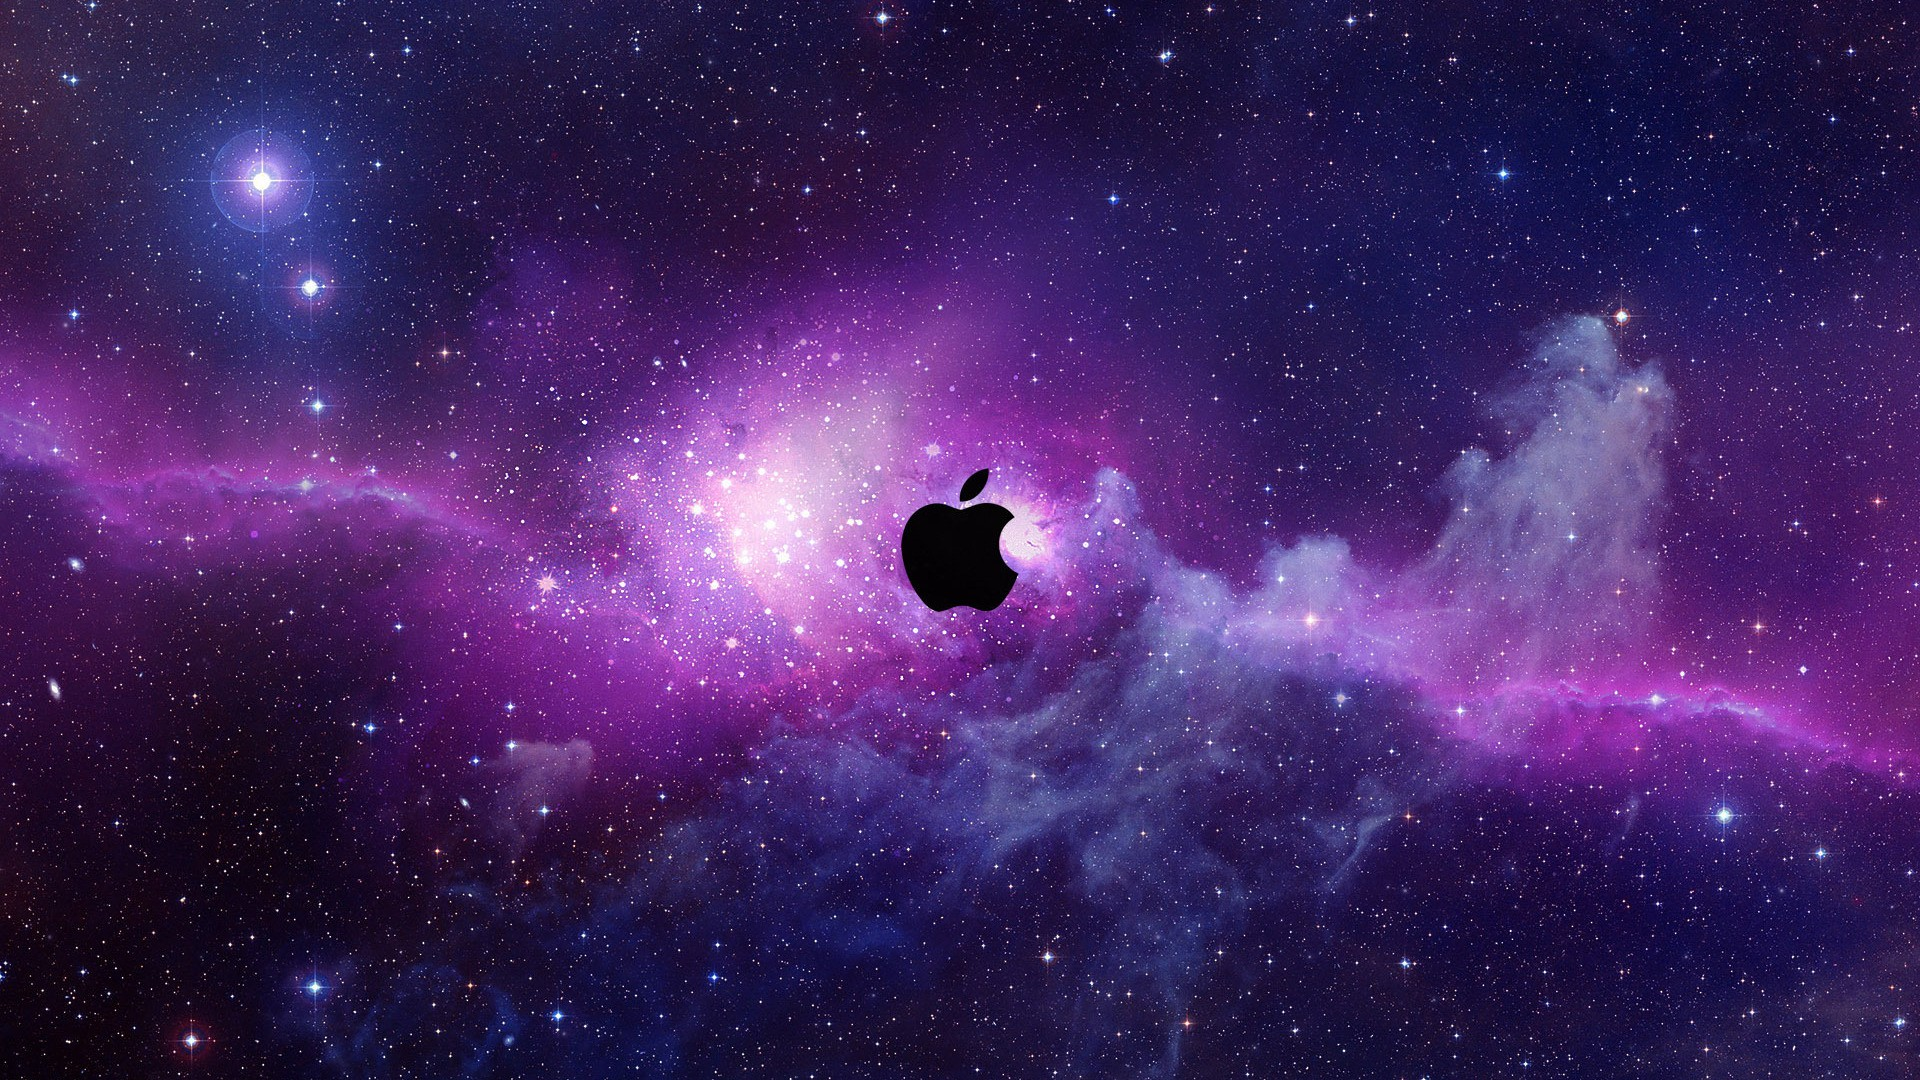 Outer Space Wallpaper 1920x1080 Outer, Space, Stars, Apple, Inc, Logos